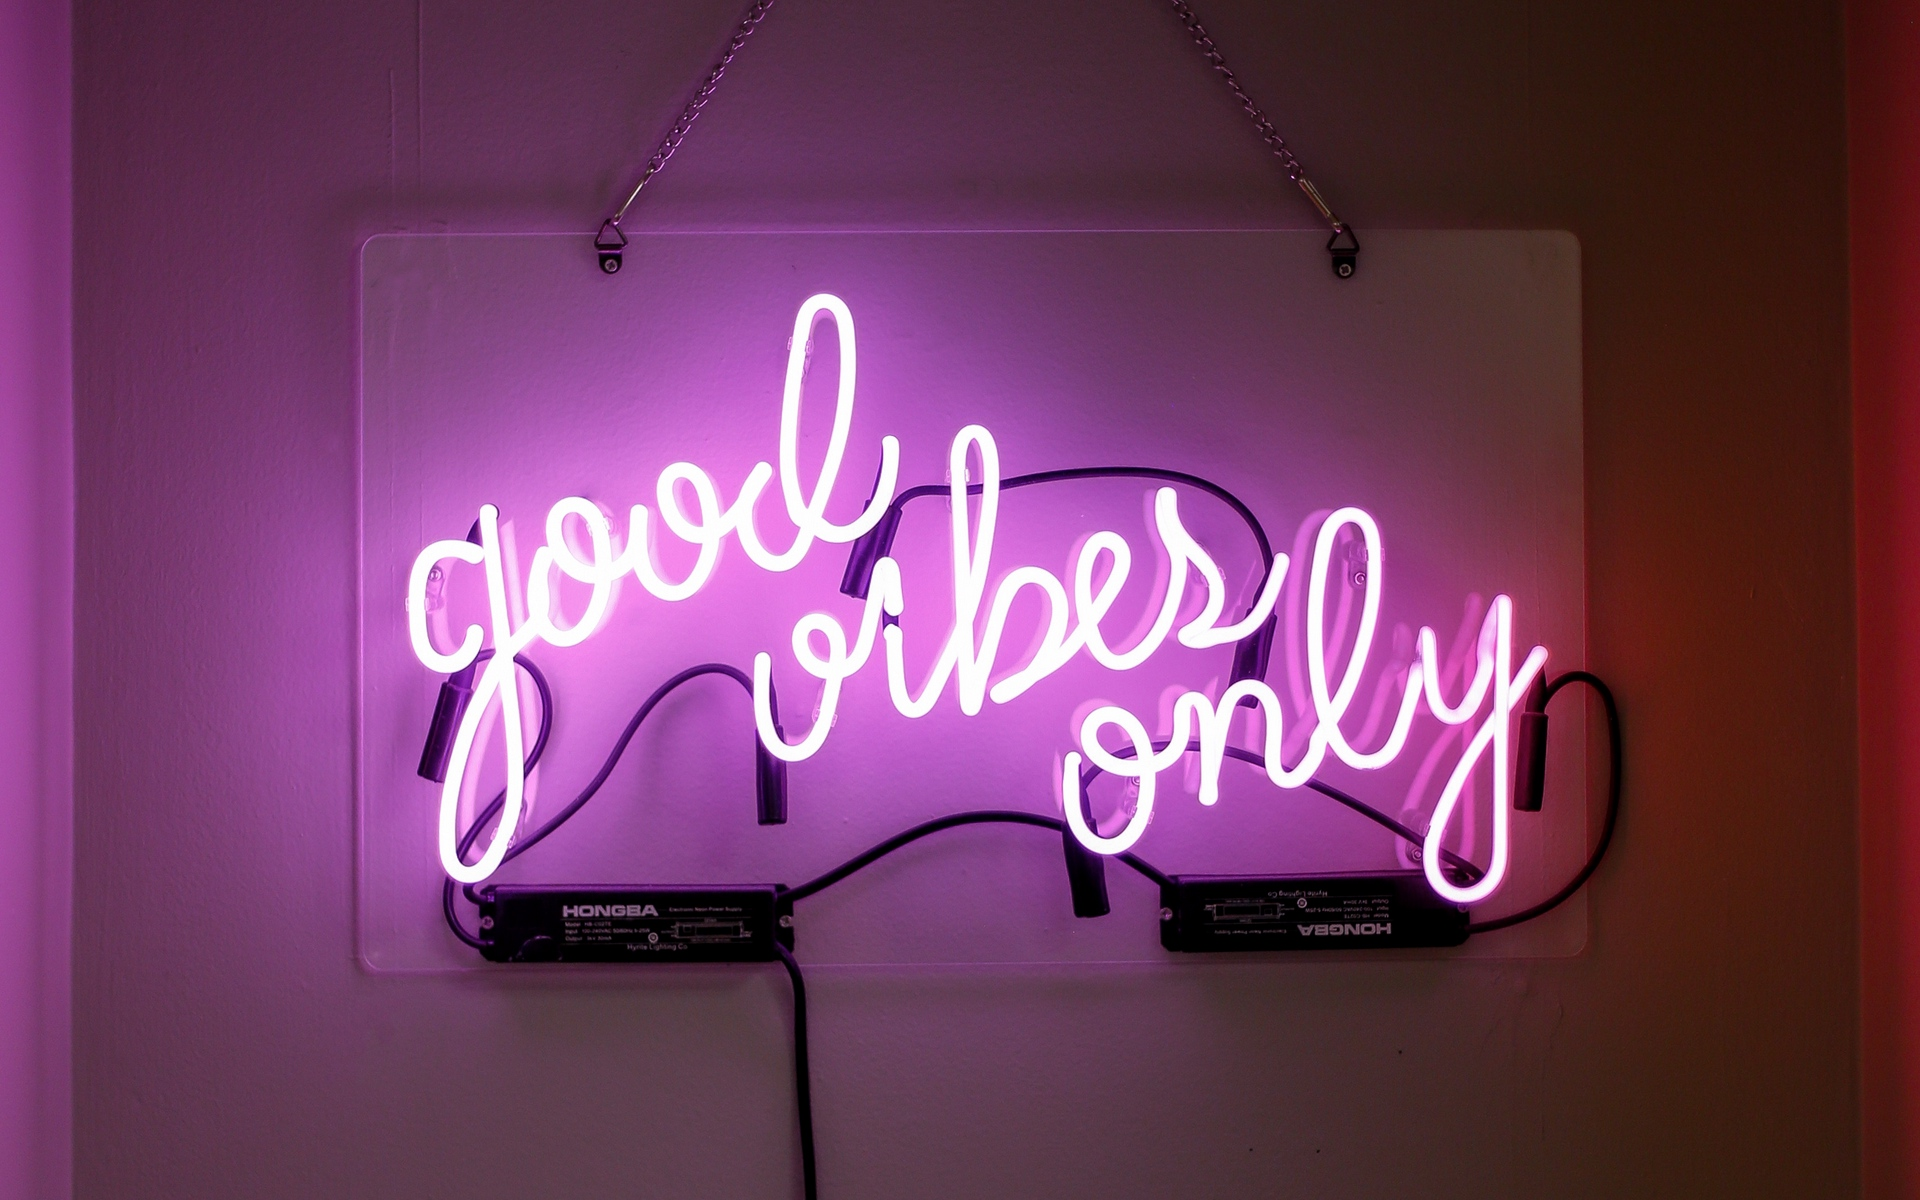 Good vibes wallpaper HD | Latest Wallpapers HD